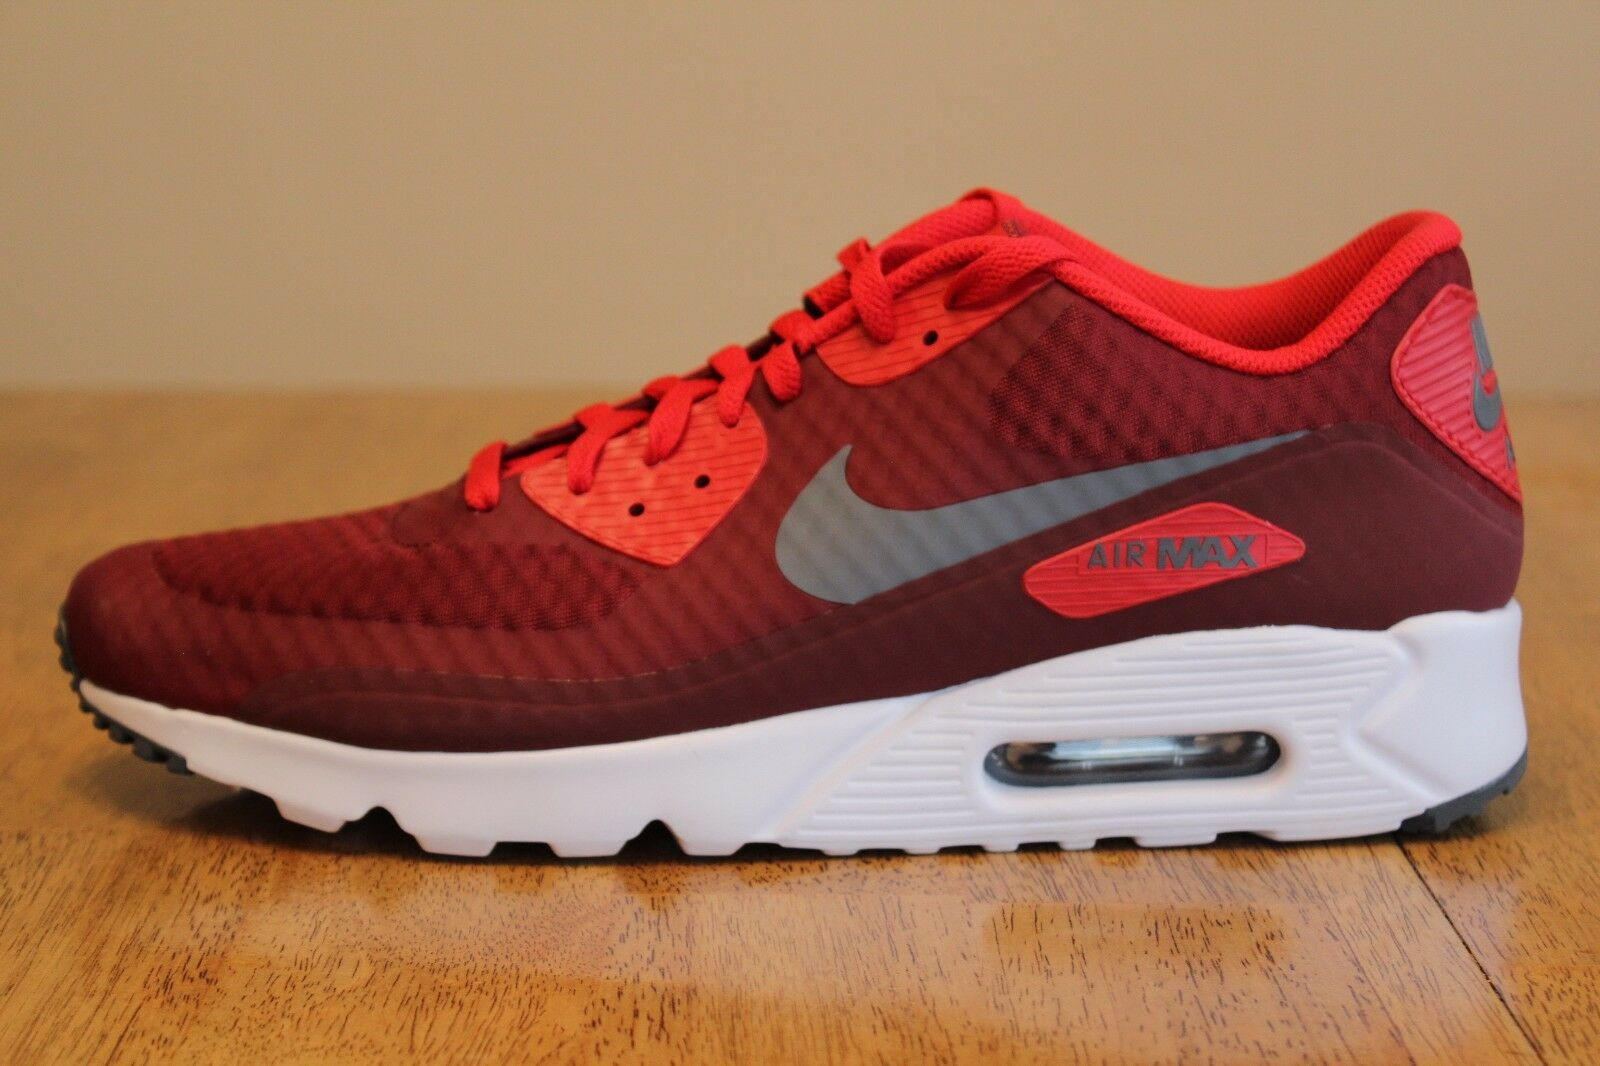 30 Nike NEW Nike 30 Men's Air Max 90 Ultra Essential Shoes 819474 602 Red White Size 13 204c2c